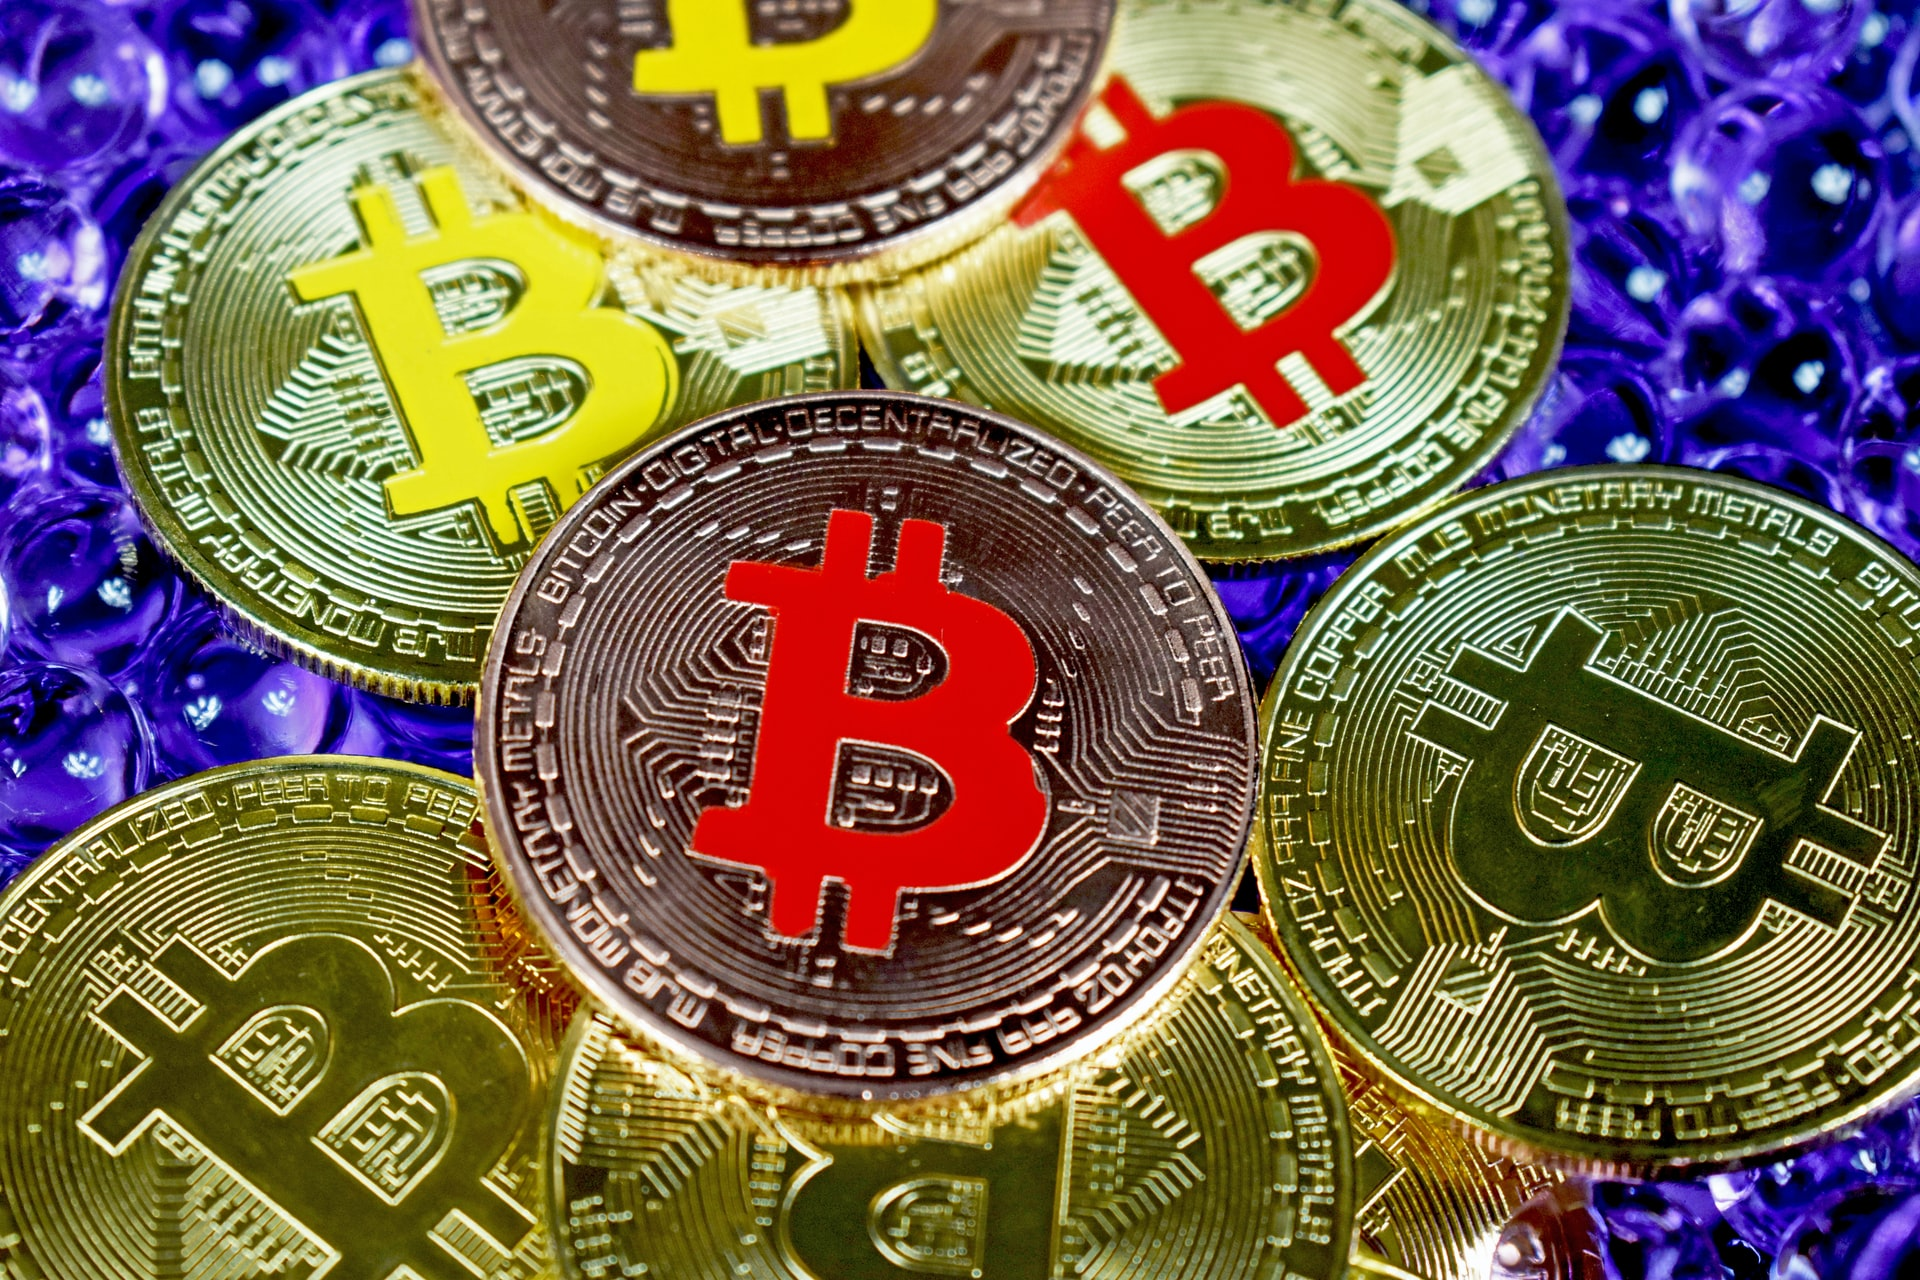 Finance News - 7% of Hedge Funds May Be Cryptocurrency in 5 Years